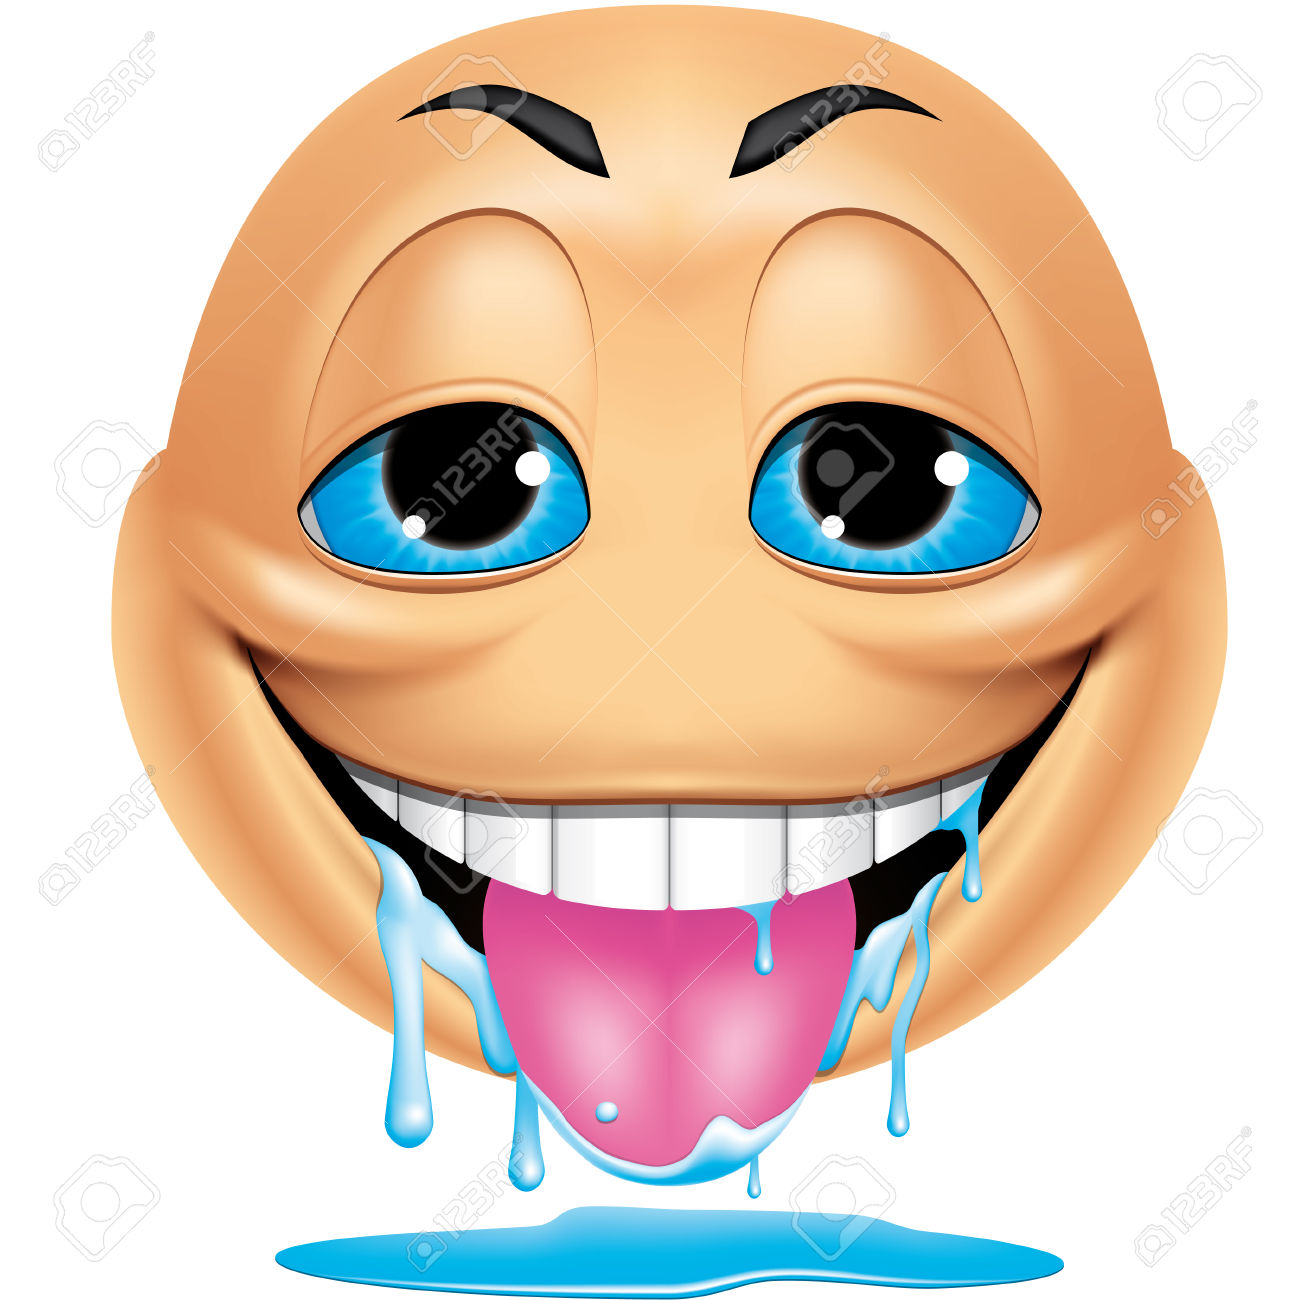 26170403-Emoticon-drooling-Stock-Photo.jpg